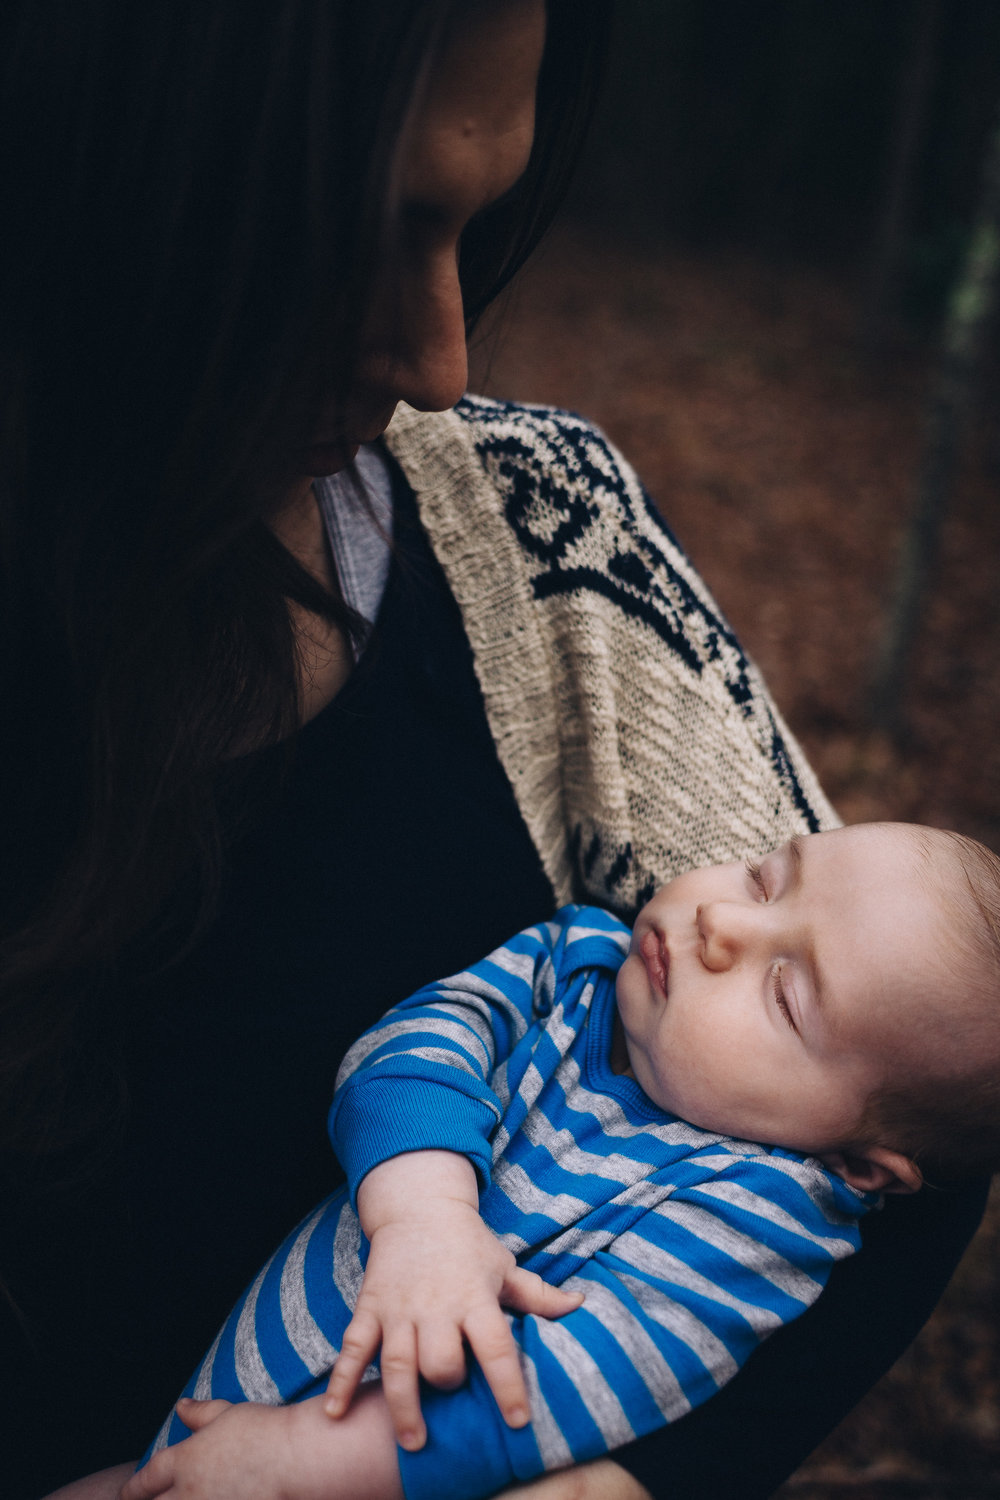 thomas wywrot photography photographer nashville tennessee family photos pictures newborn tn lifestyle candid baby infant outdoor fall trees leaves brentwood franklin natural